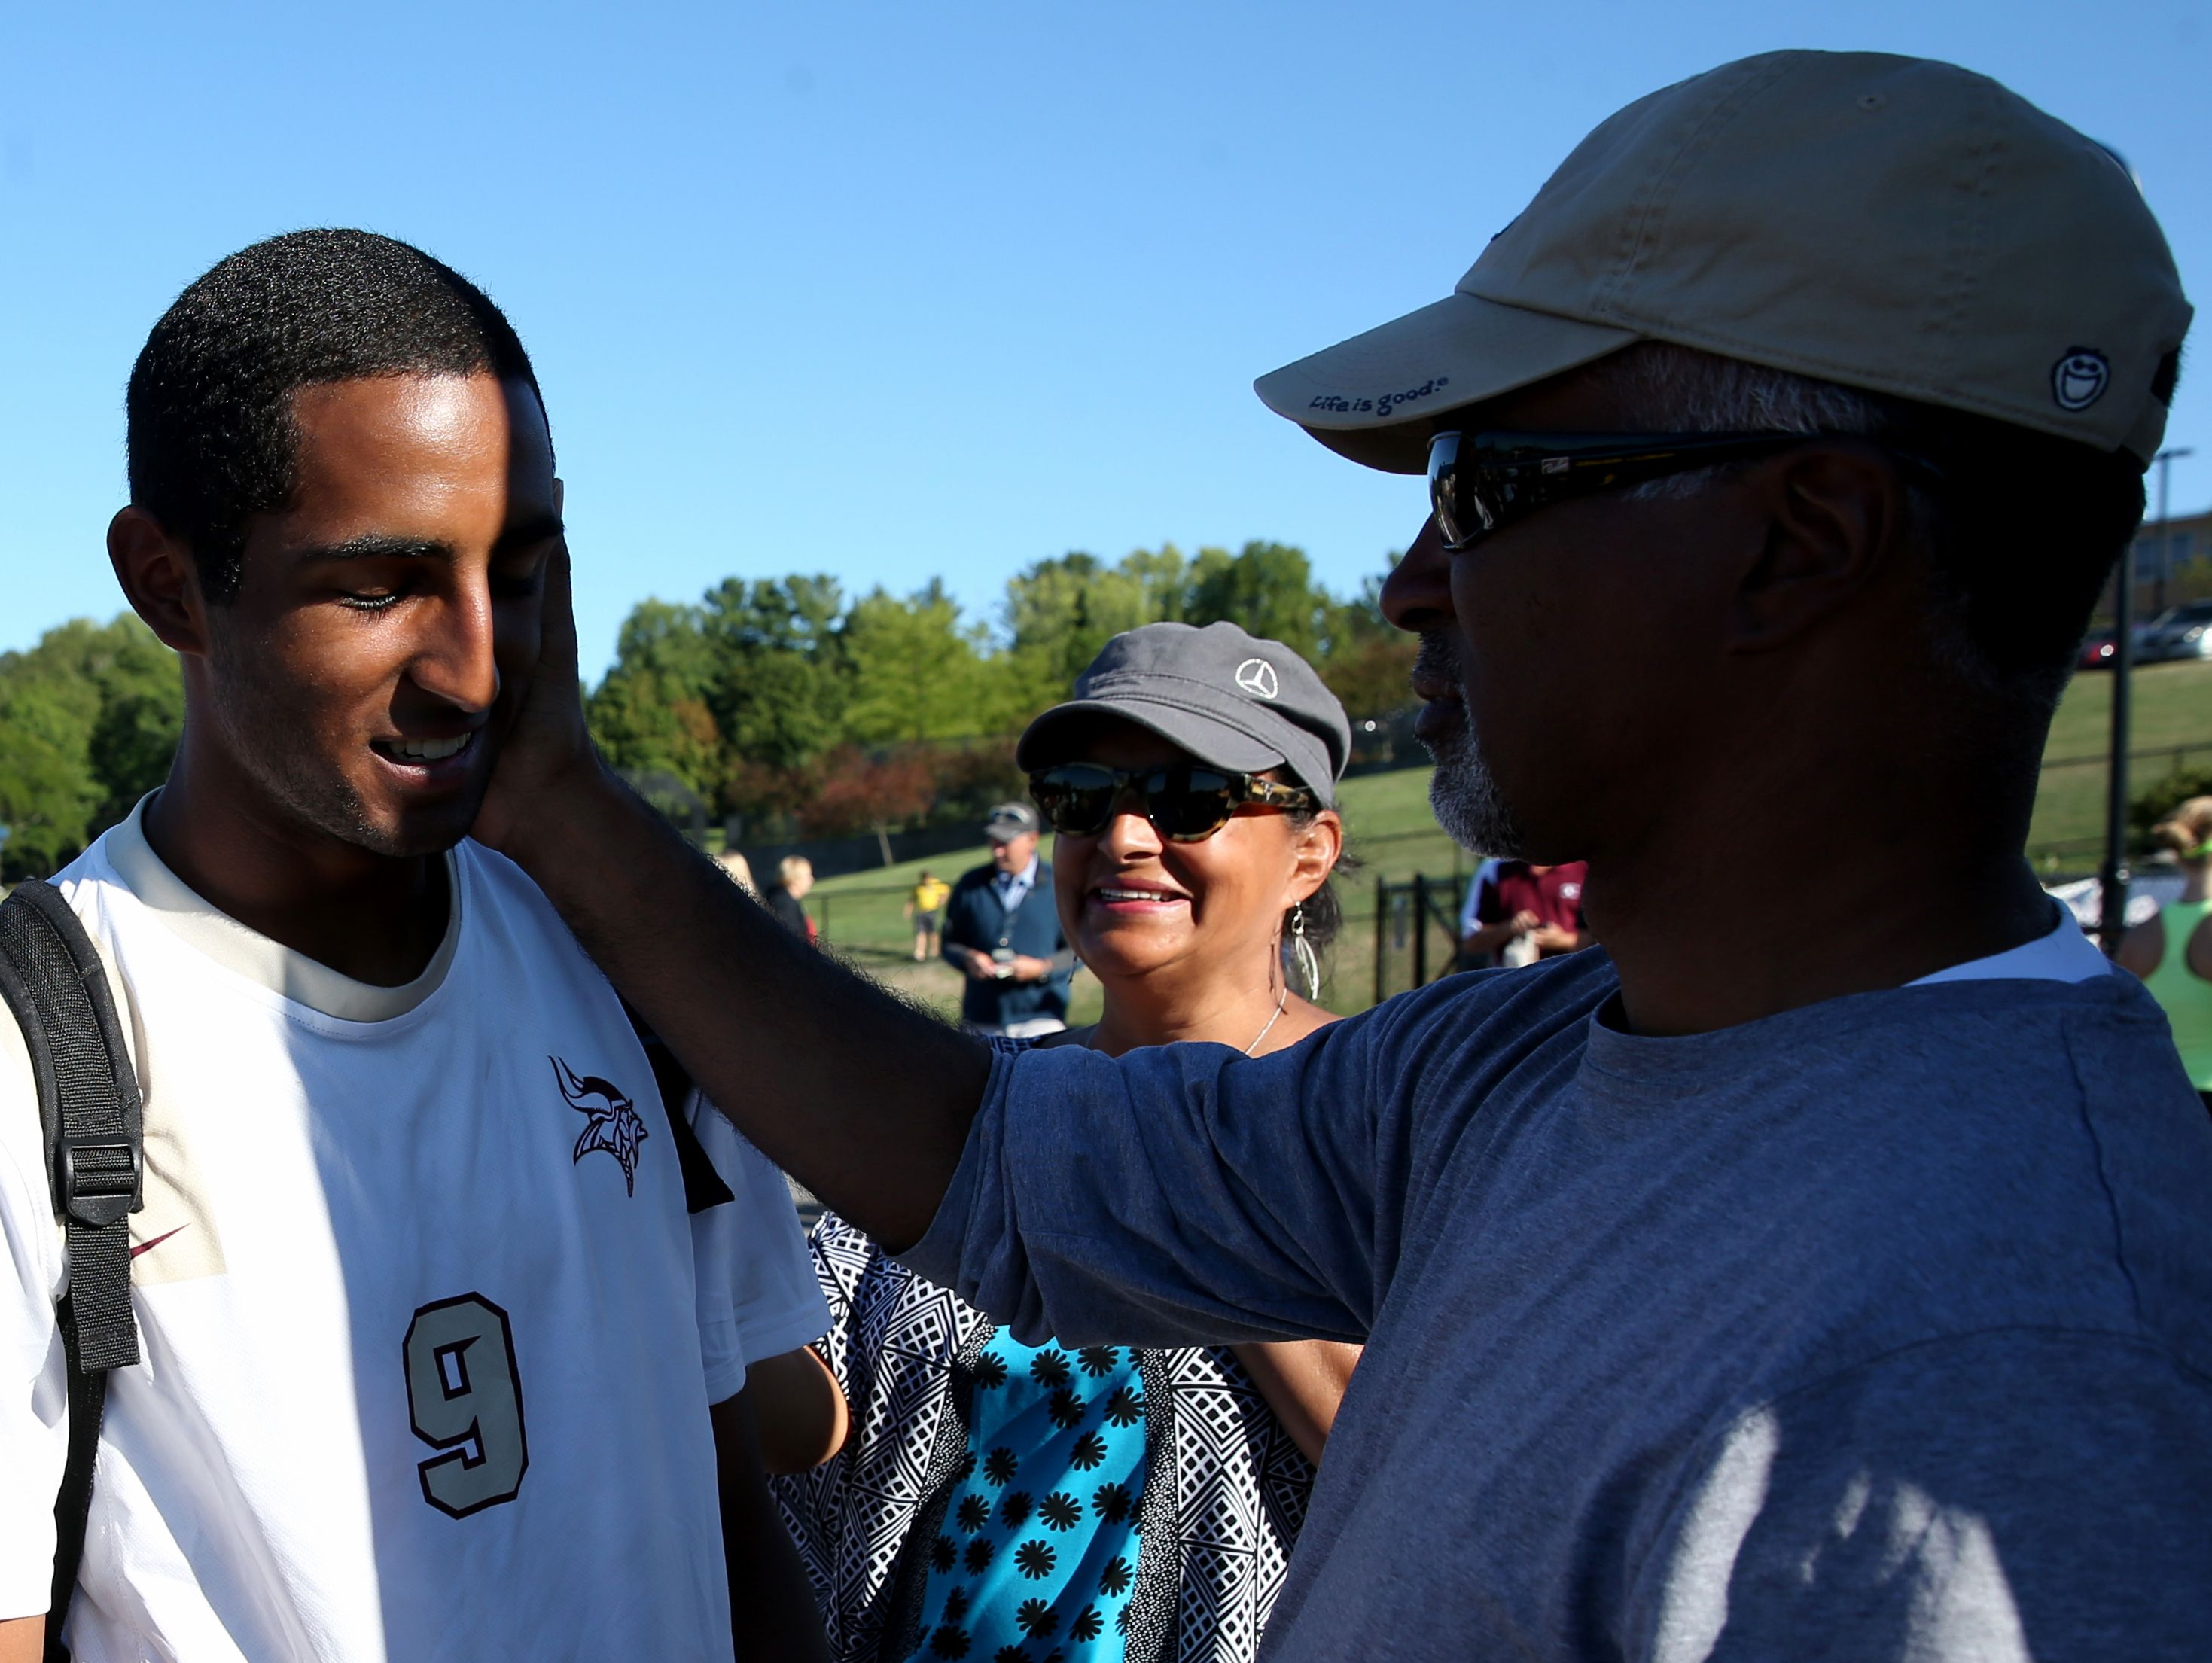 Adrian Padilla's father, Donald, touches his cheek after the Pittsford Mendon soccer team defeated Aquinas as Adrian's mother, Maria, center, looks on. Donald Padilla, now a retired state trooper, worked for a couple months at Ground Zero during the cleanup following the attacks.